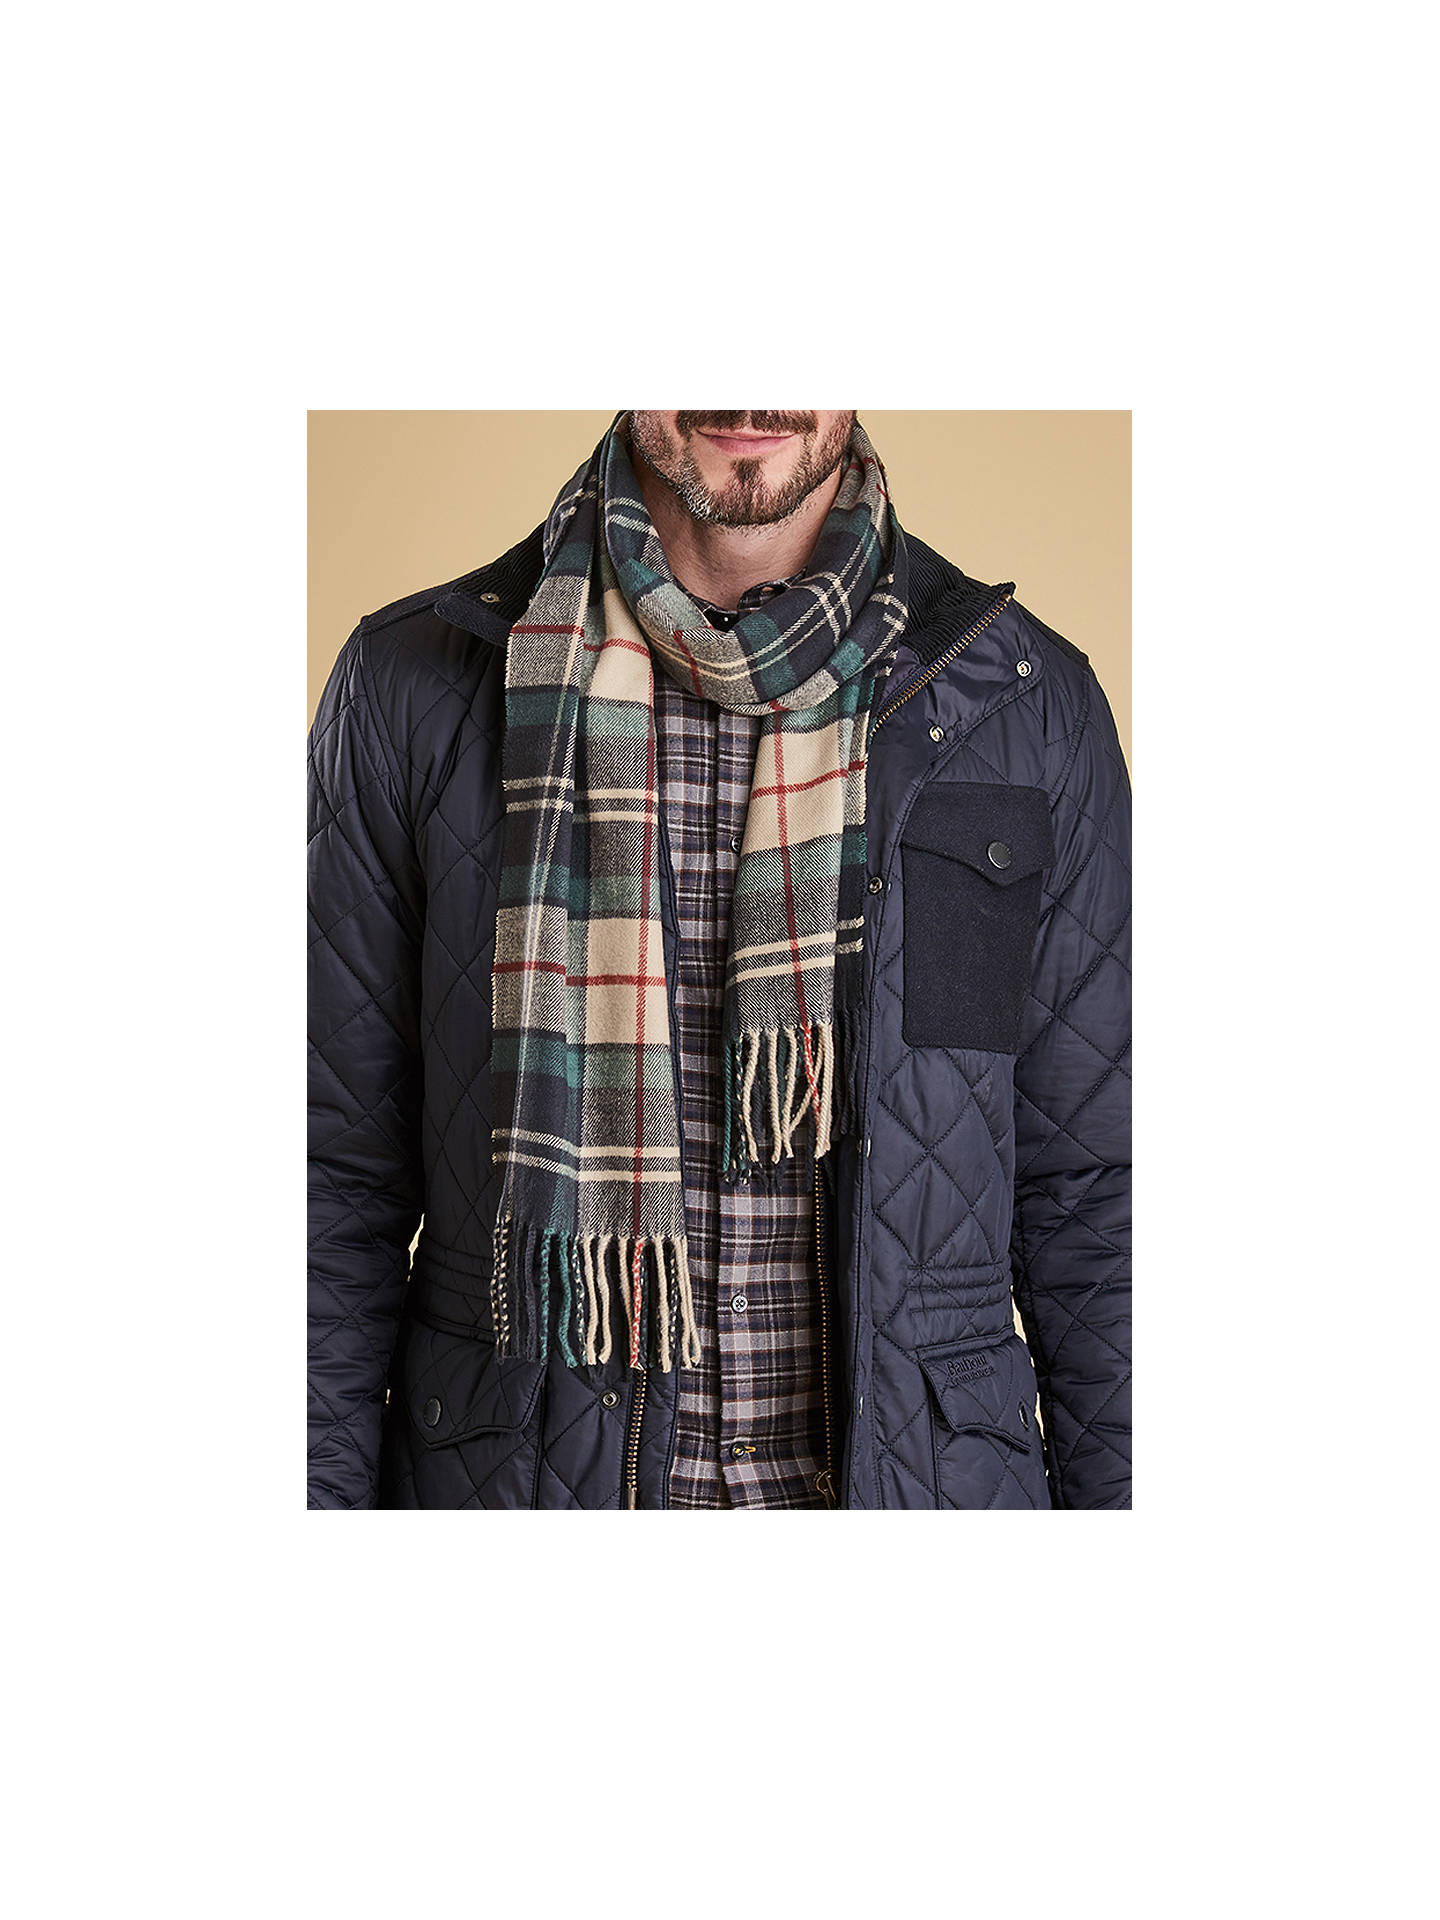 Buy Barbour Land Rover Defender Wool Check Scarf and Leather Glove Set, Brown, S/M Online at johnlewis.com